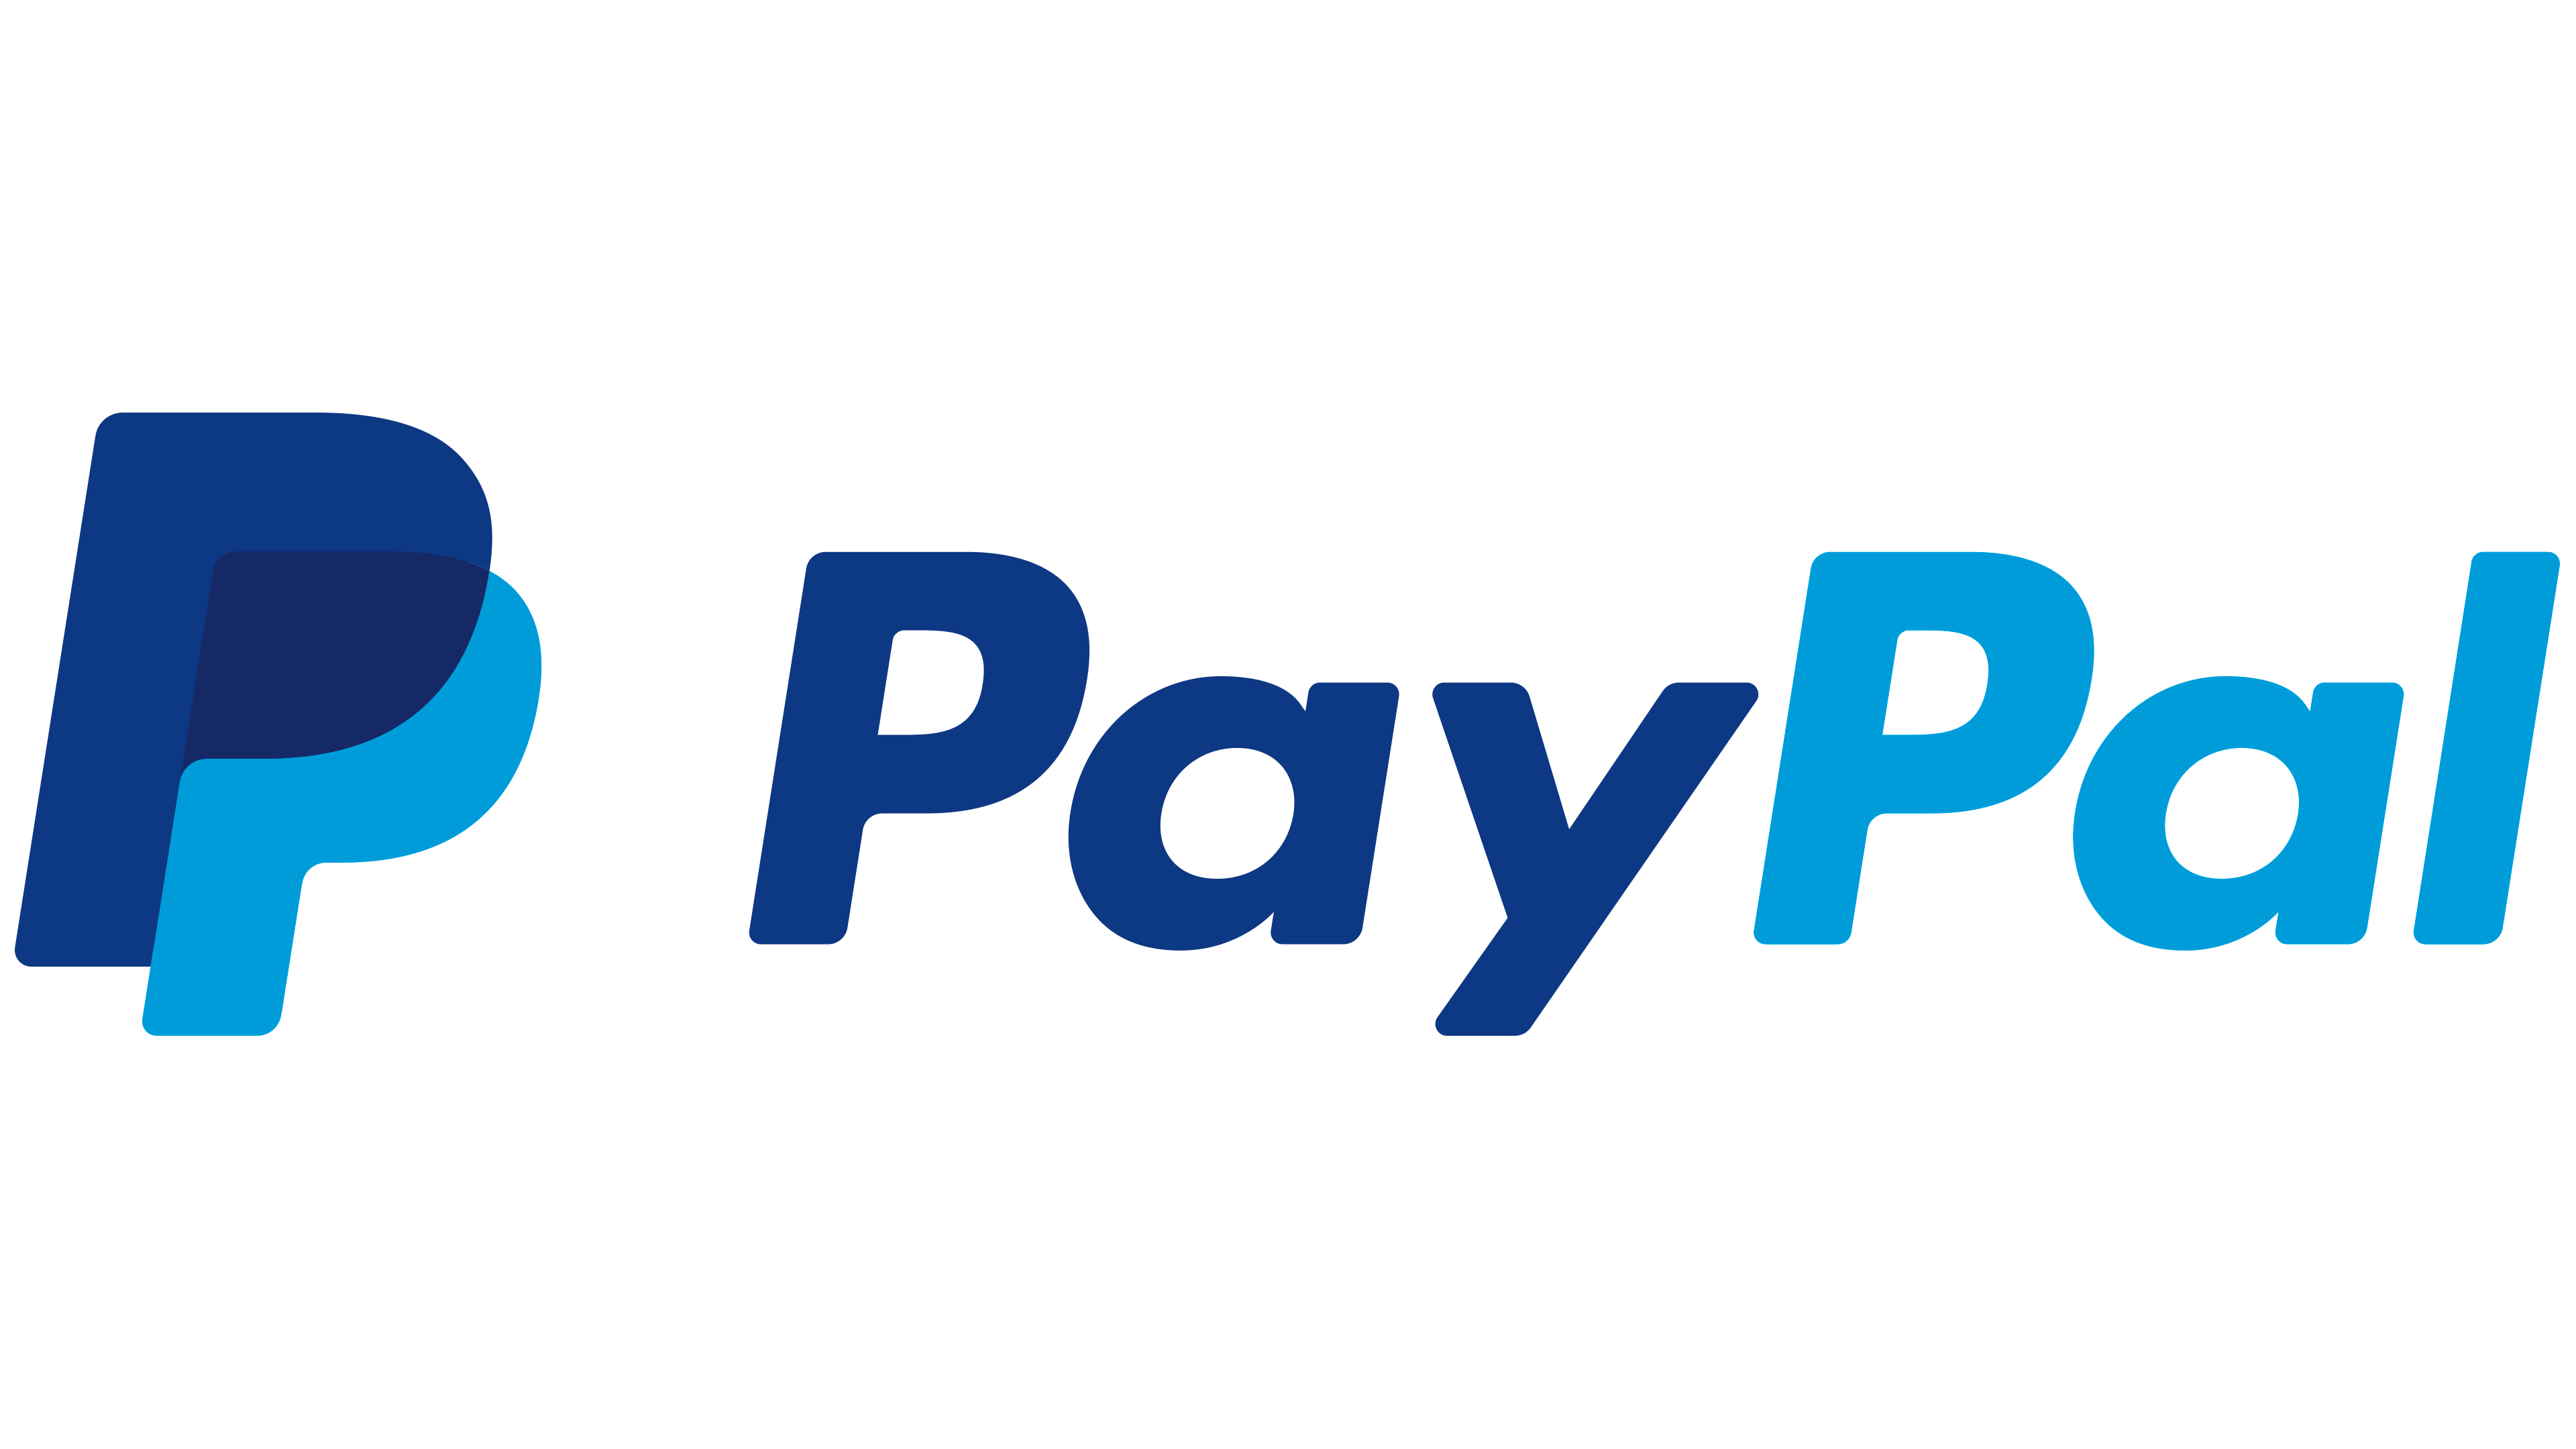 pagemento paypal